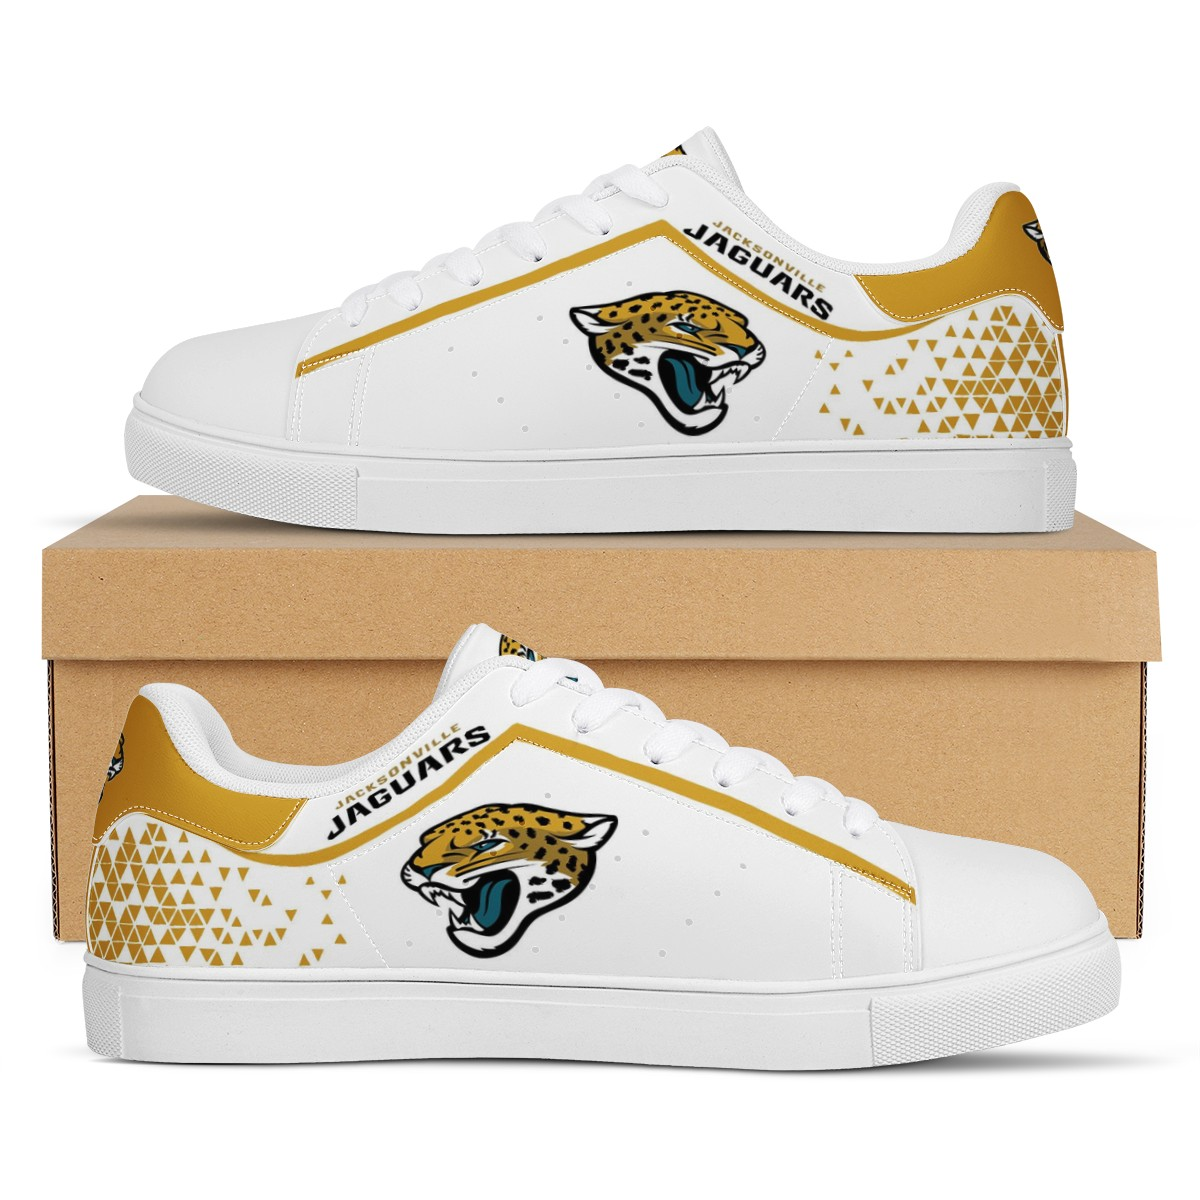 Men's Jacksonville Jaguars Low Top Leather Sneakers 002